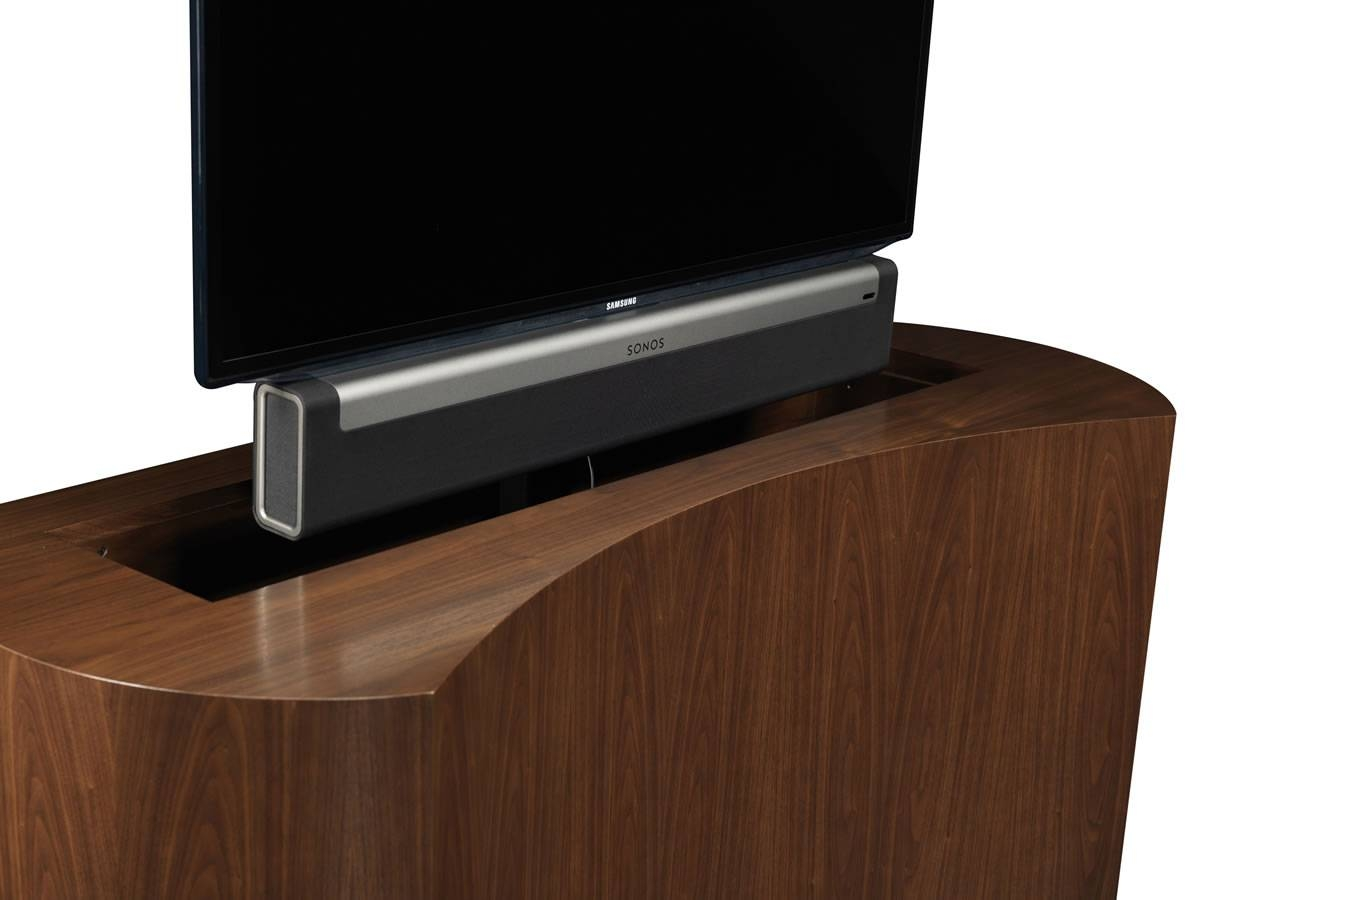 Sonos Sound Bar Playbar With Tv Lift Cabinet – Cabinet Tronix Intended For Sonos Tv Stands (View 12 of 15)